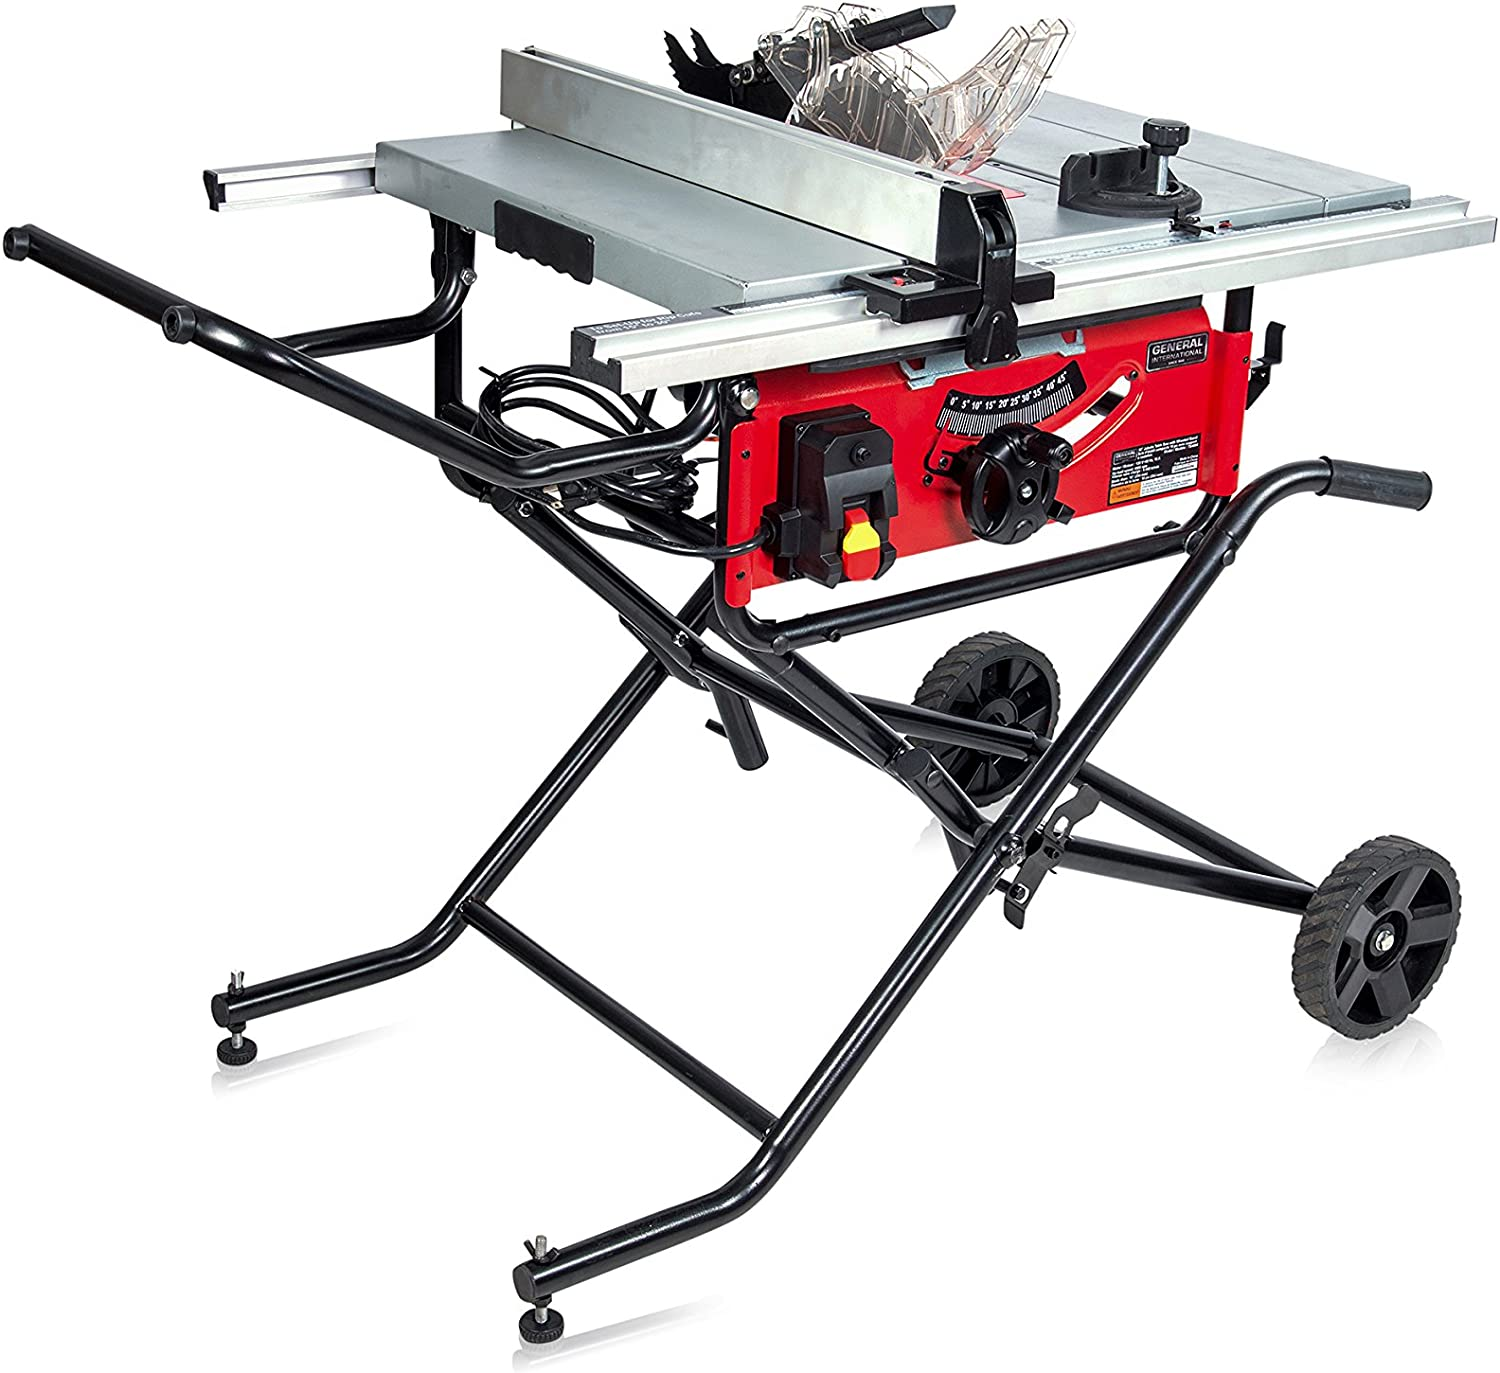 General International TS4004 Table Saws product image 18